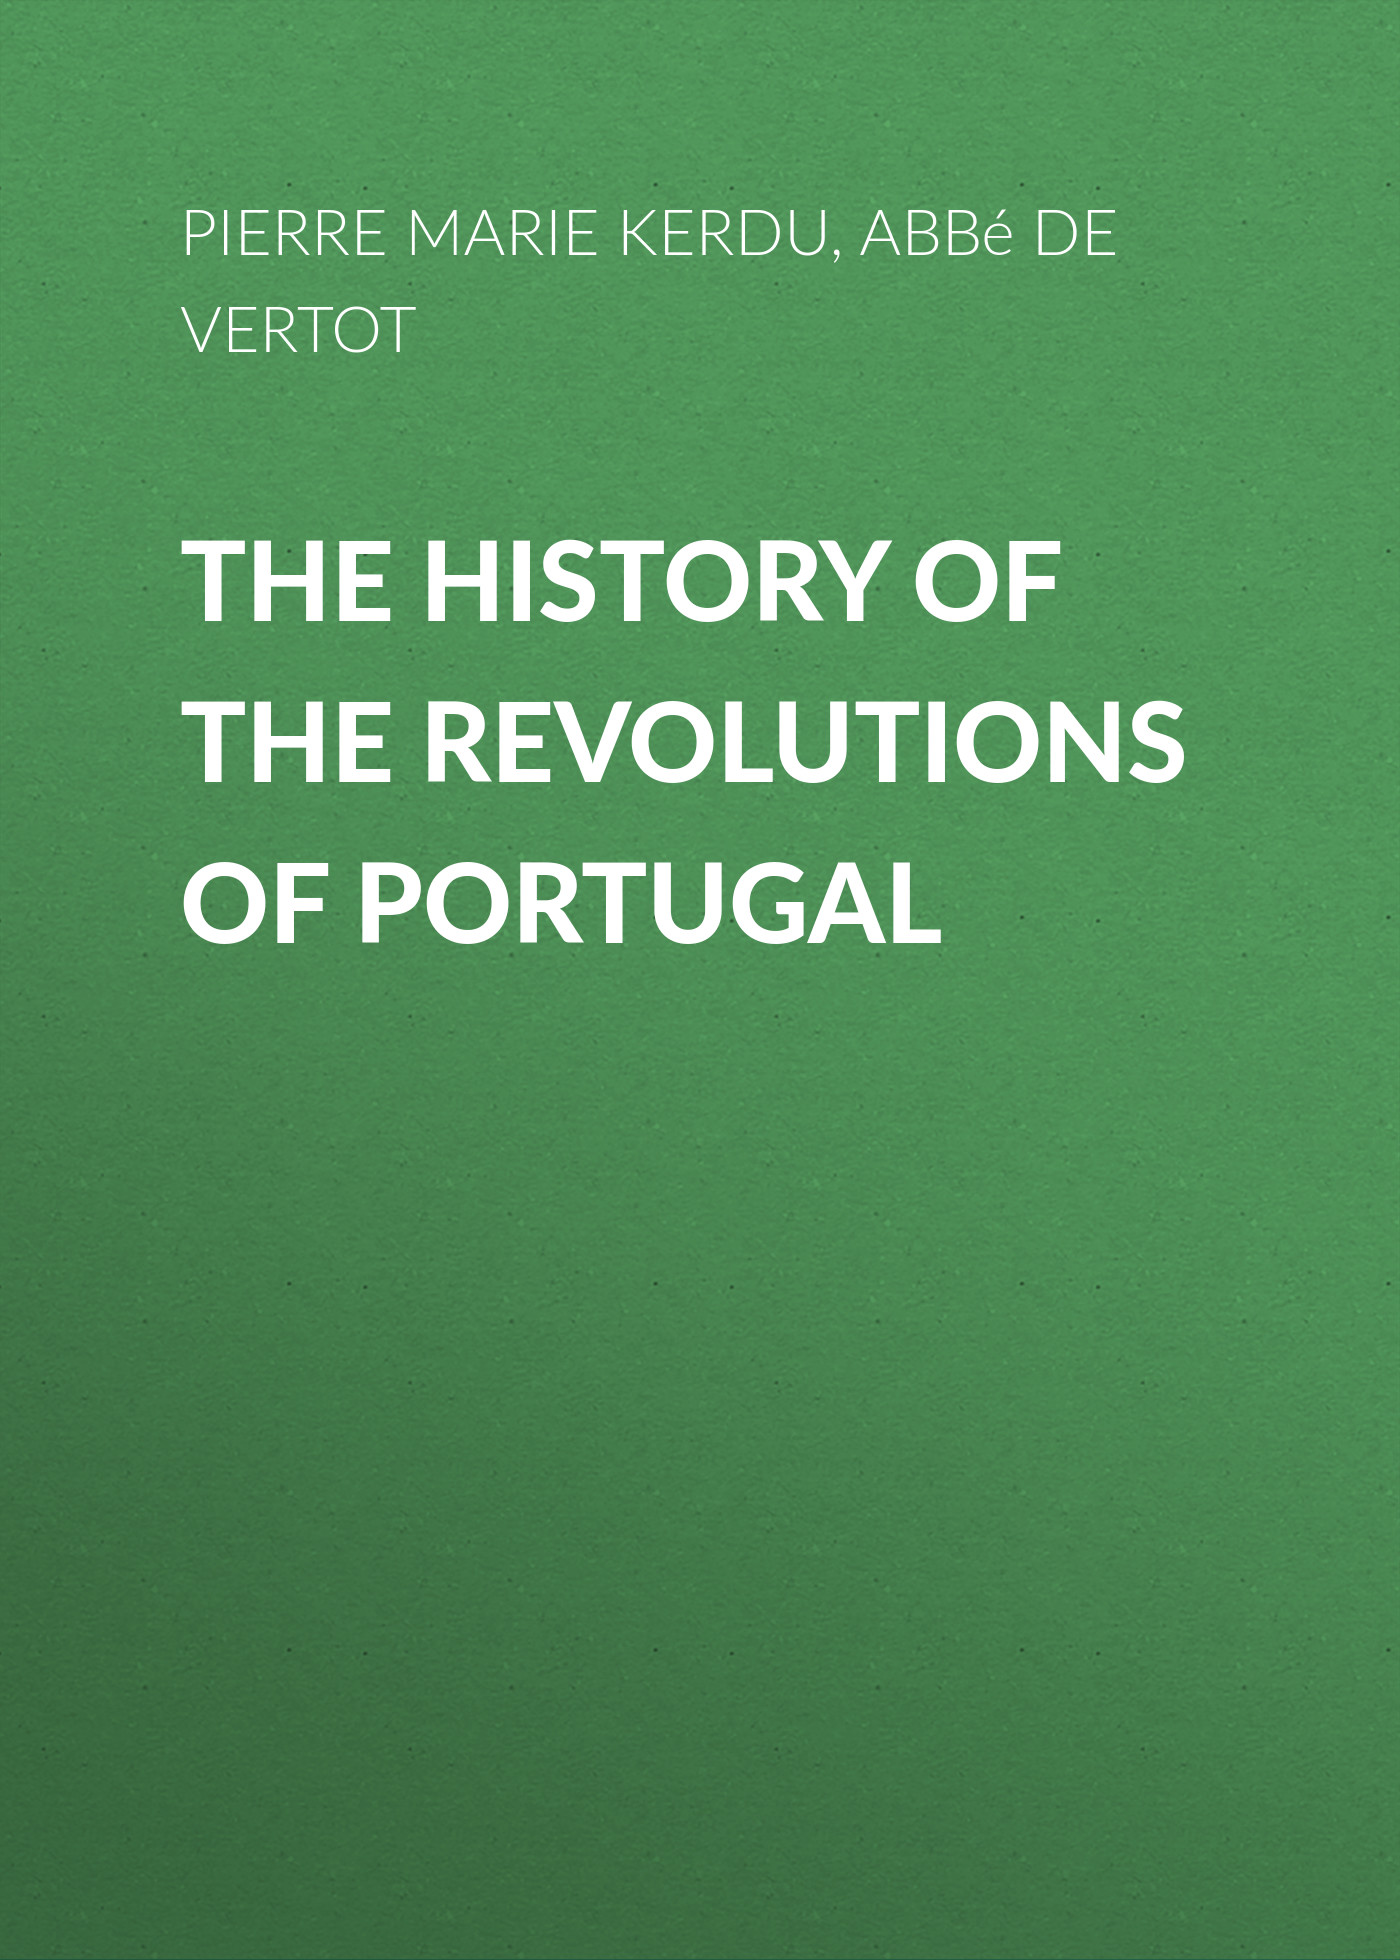 Pierre Marie Louis de Boisgelin de Kerdu The History of the Revolutions of Portugal